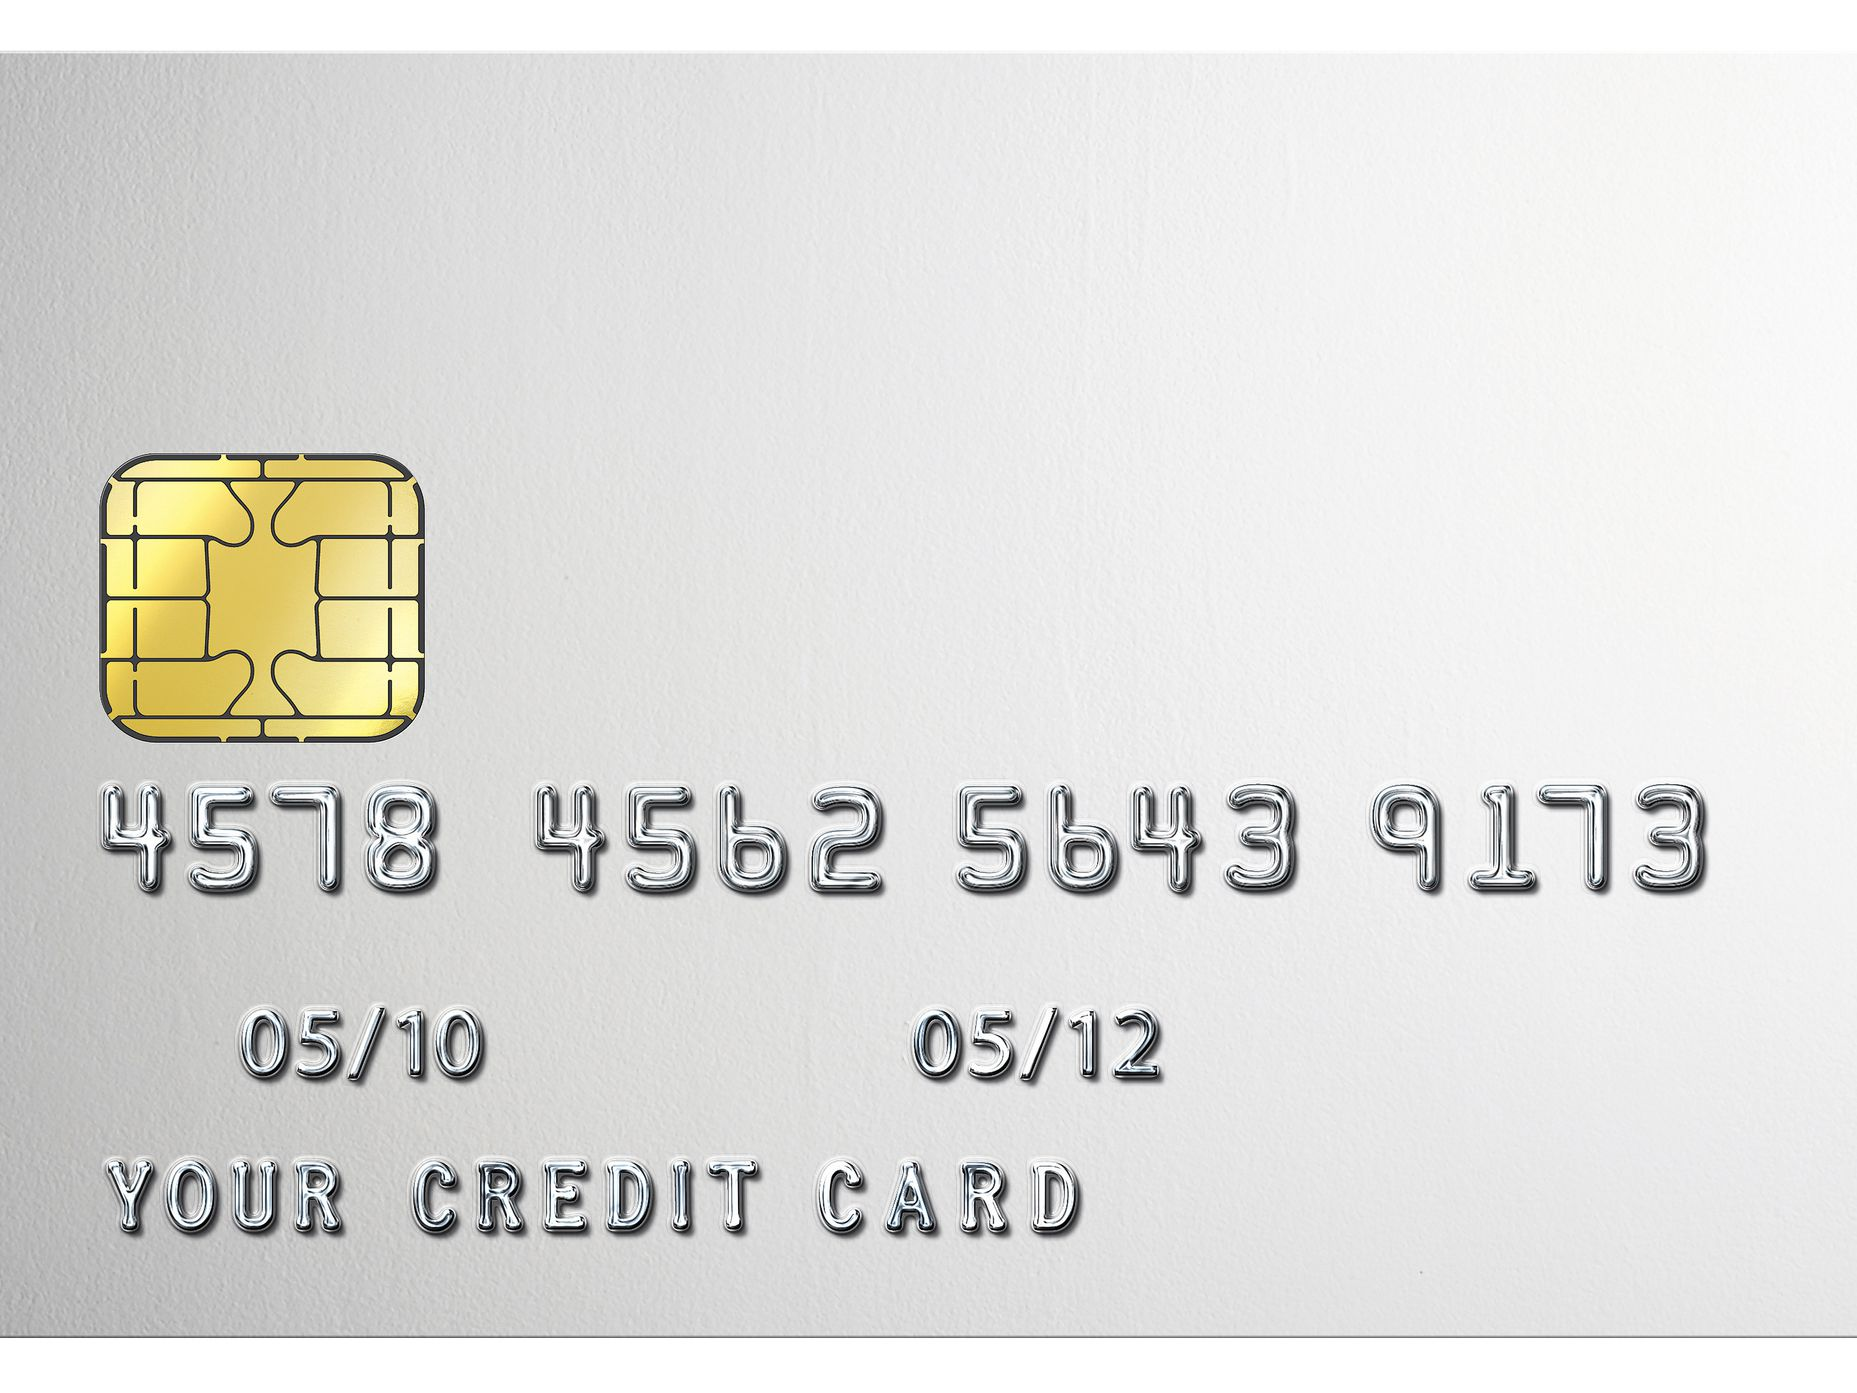 What Do the Numbers on Your Credit Card Mean?